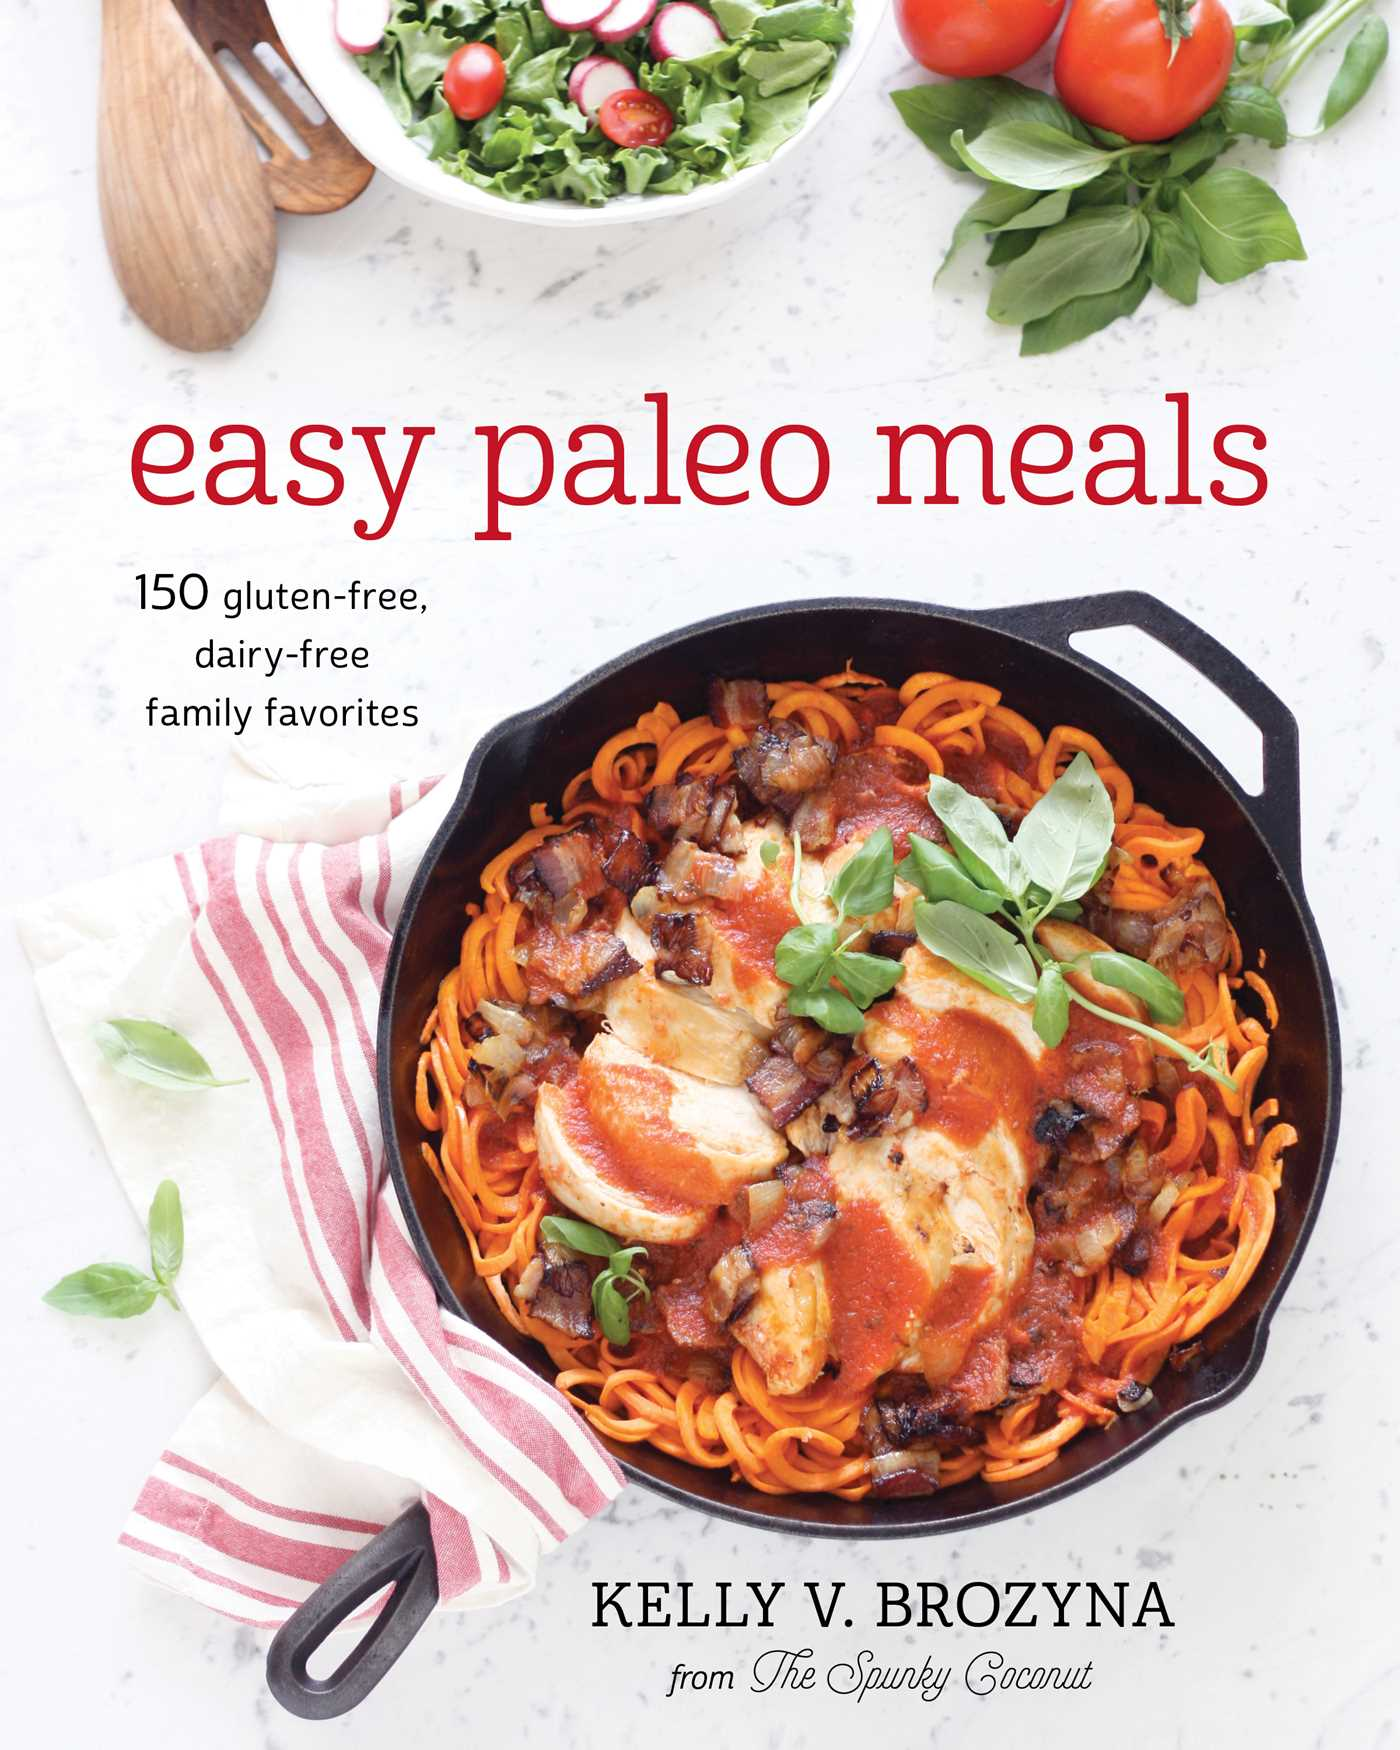 Easy paleo meals 9781628600858 hr